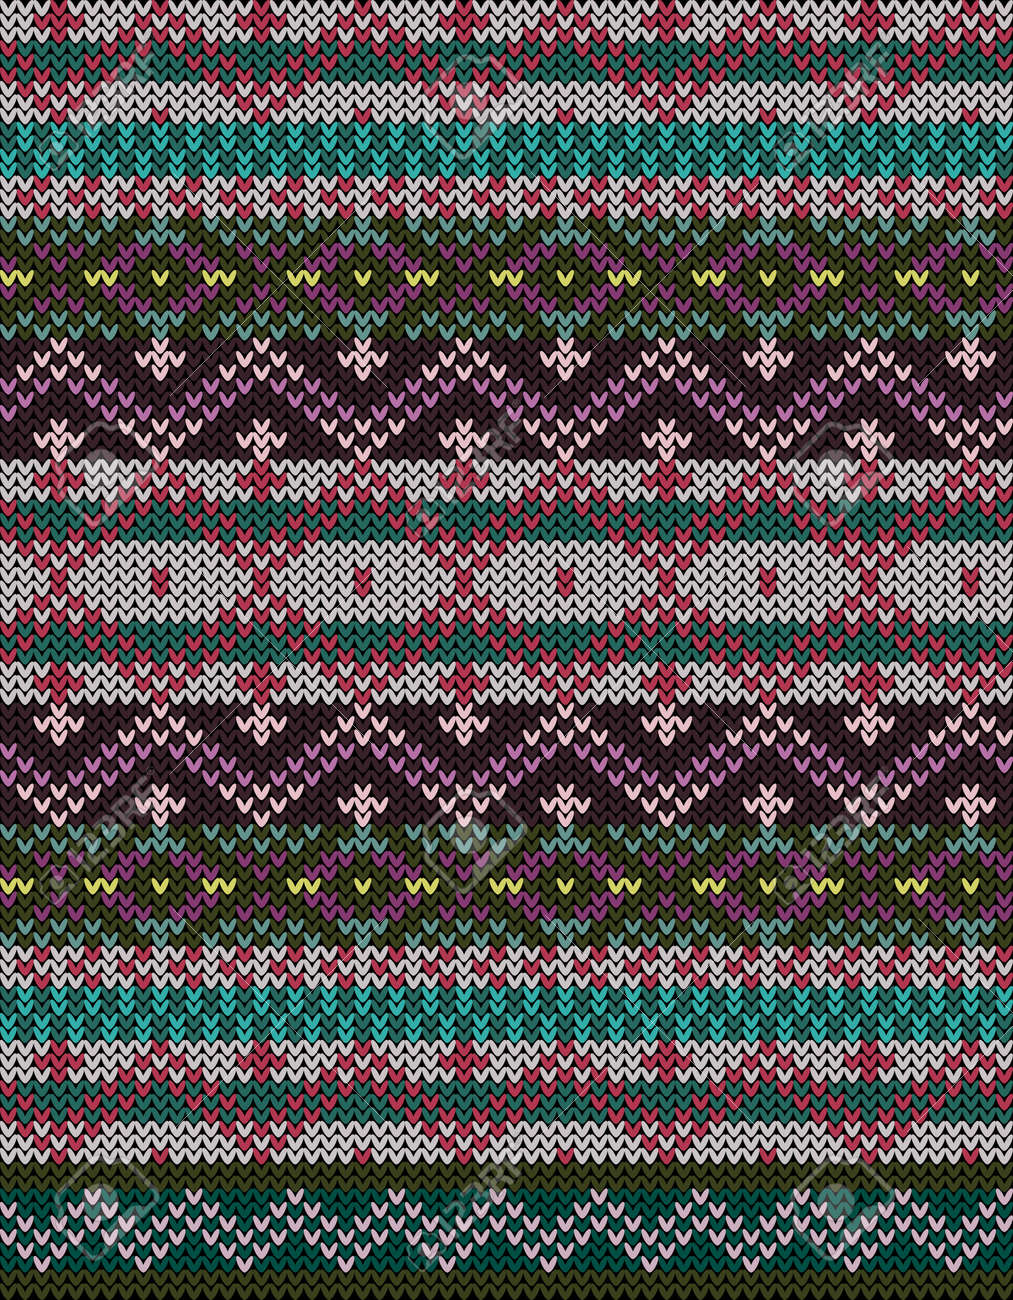 Fair Isle knitted colorful seamless pattern, scandynavian style - 159637248